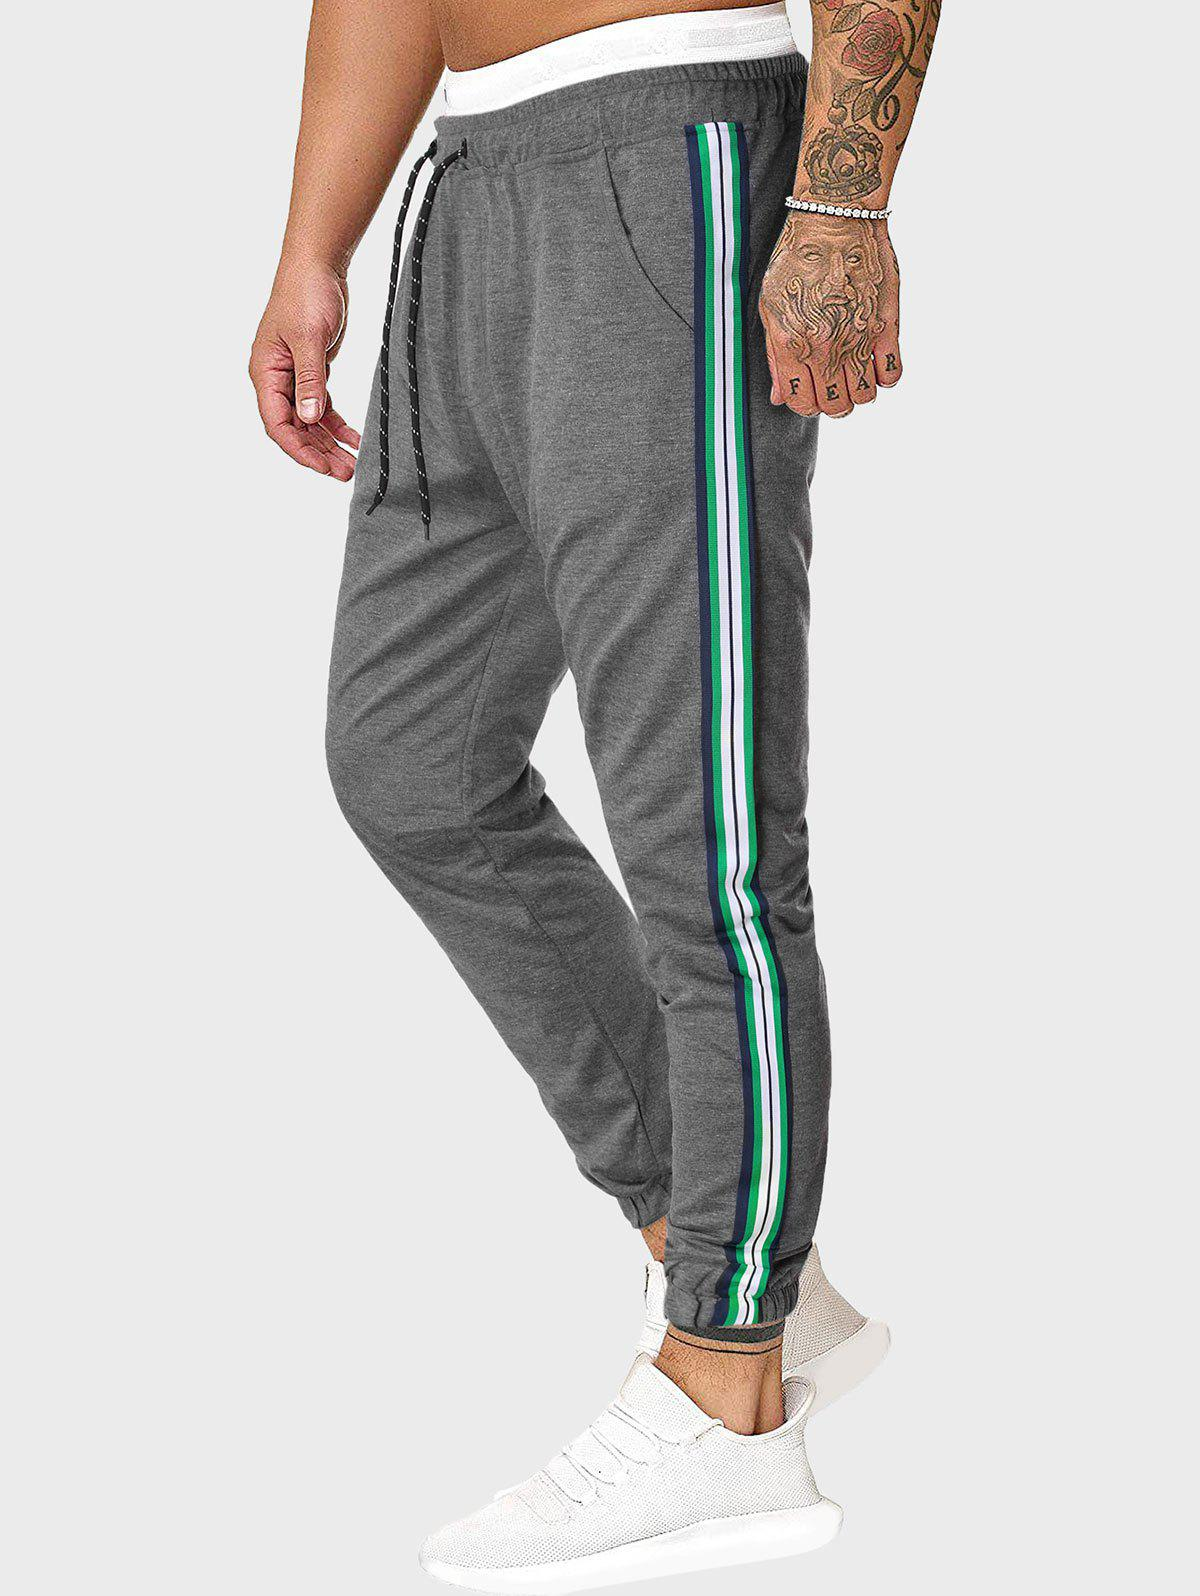 Drawstring Side Striped Tapered Sports Pants - GRAY L